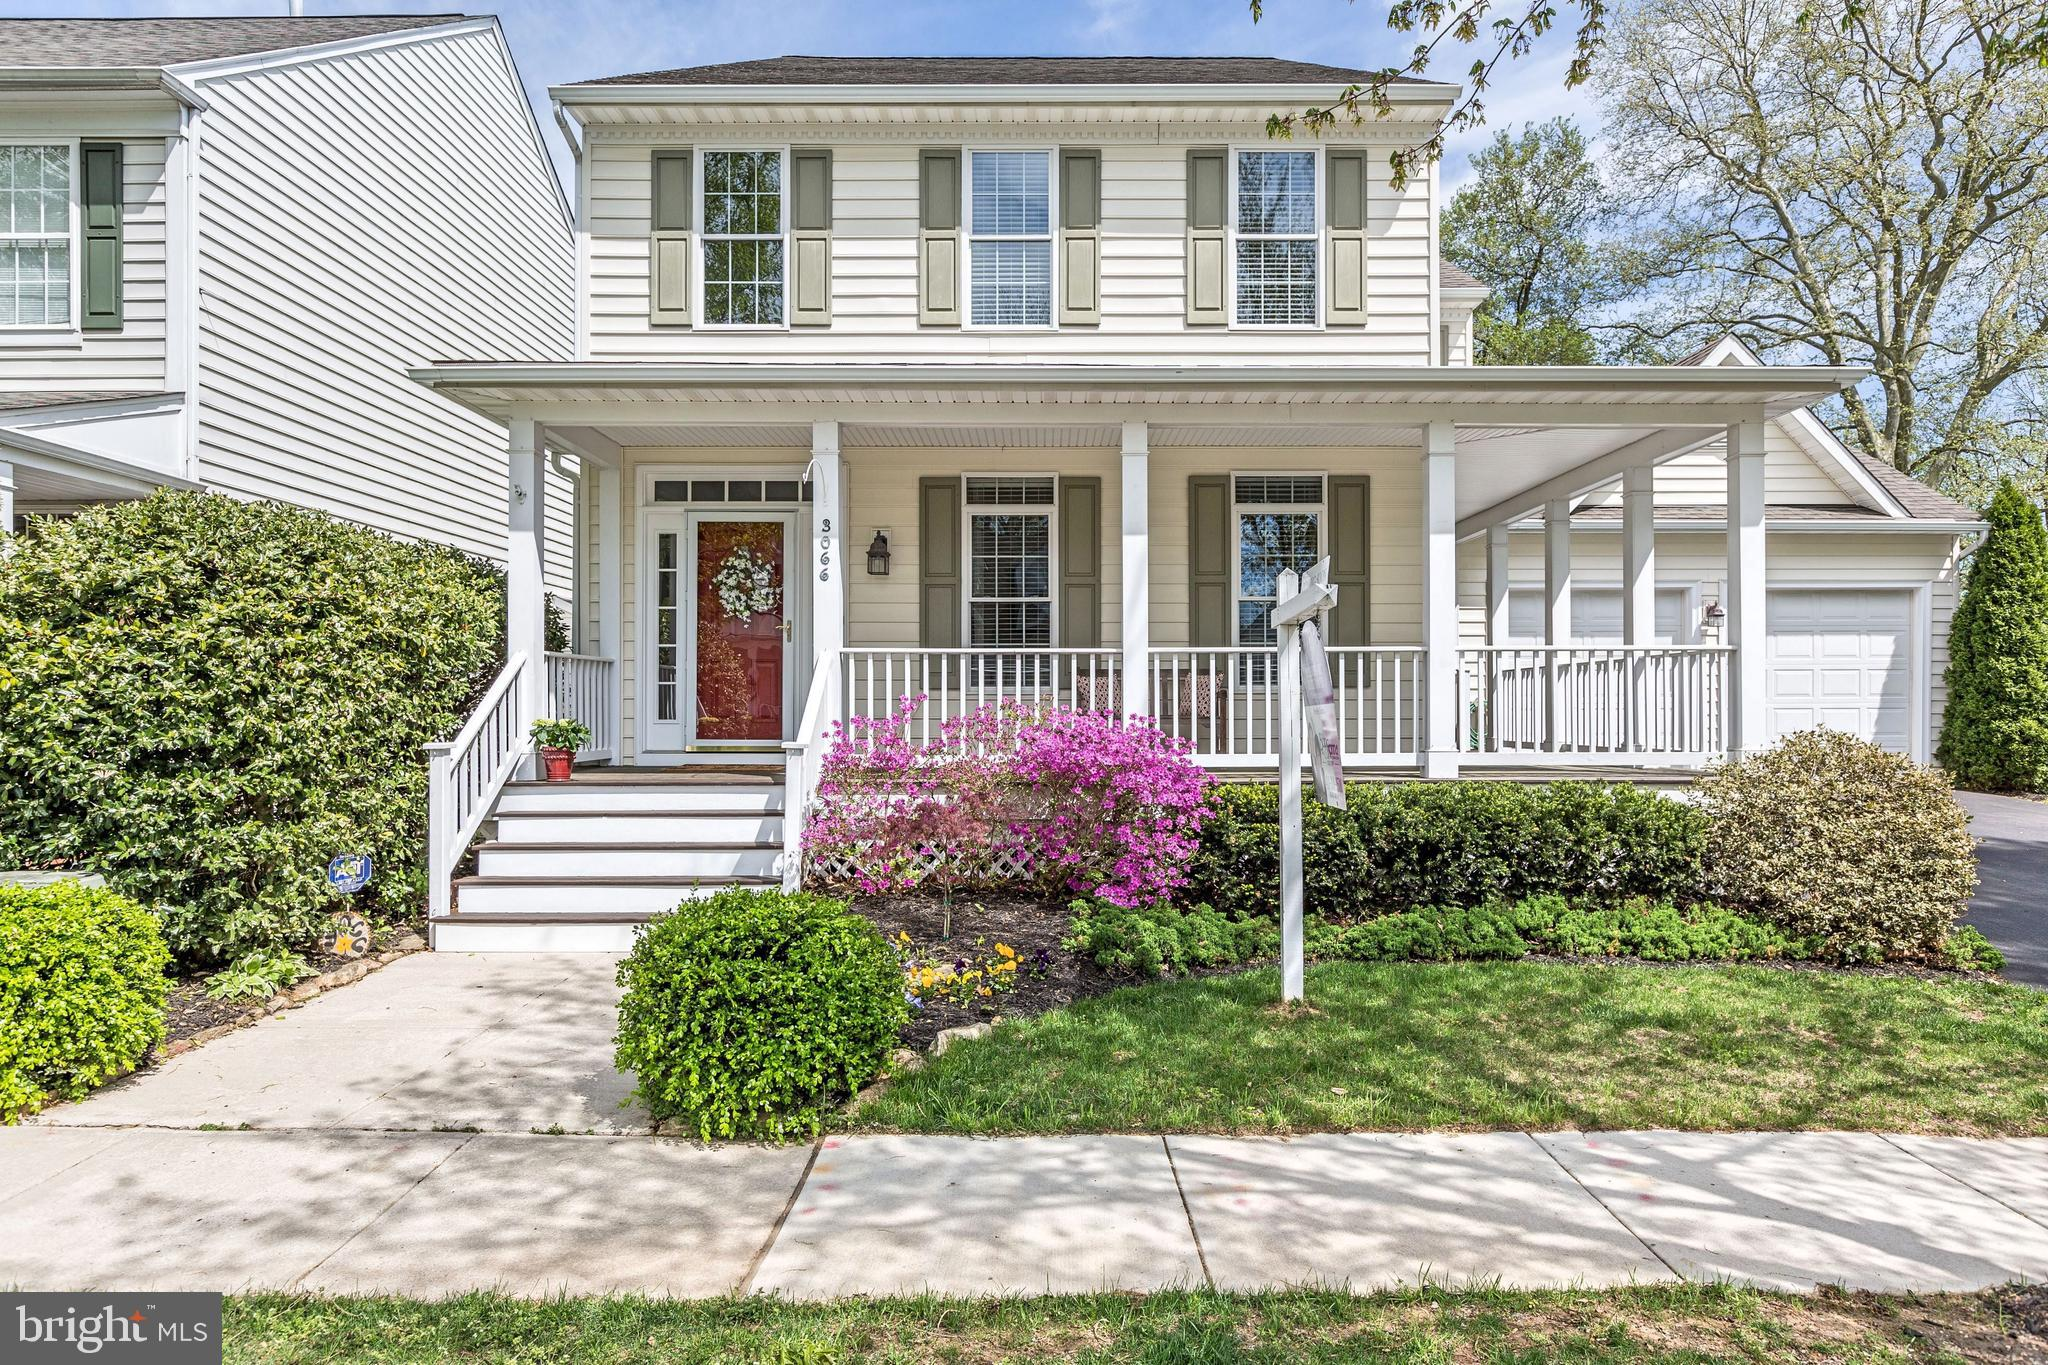 3066 TERRA MARIA WAY, ELLICOTT CITY, MD 21042